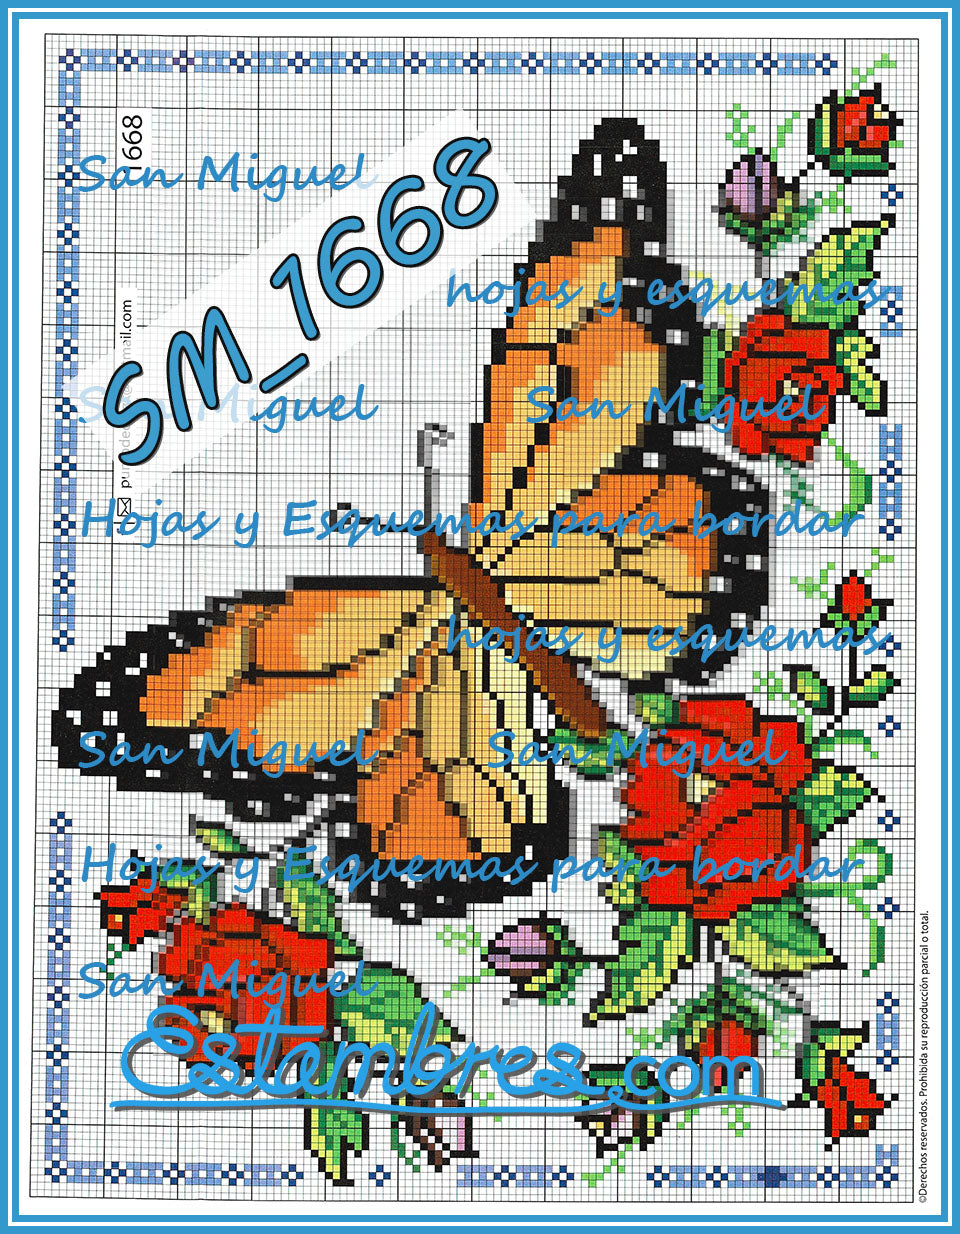 San Miguel 1600 Series - 2 of 2 - Embroidery Pattern | Crewel Stitch Embroidery | Creative Needlecraft Schemes